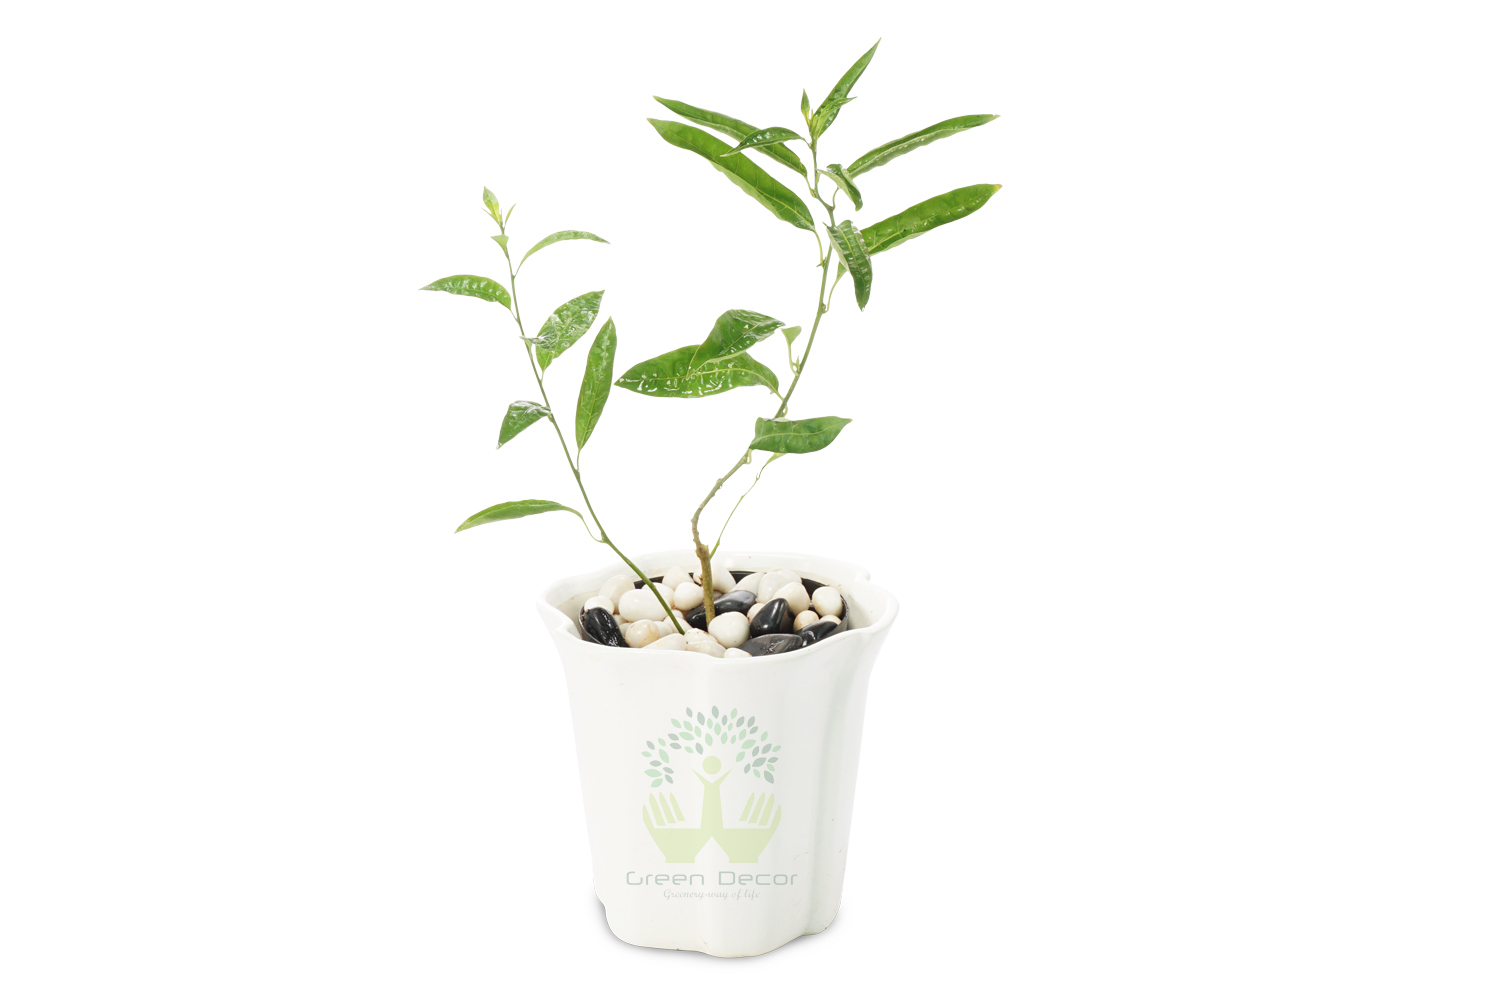 Buy Raat ki Rani Plants Front View , White Pots and seeds in Delhi NCR by the best online nursery shop Greendecor.